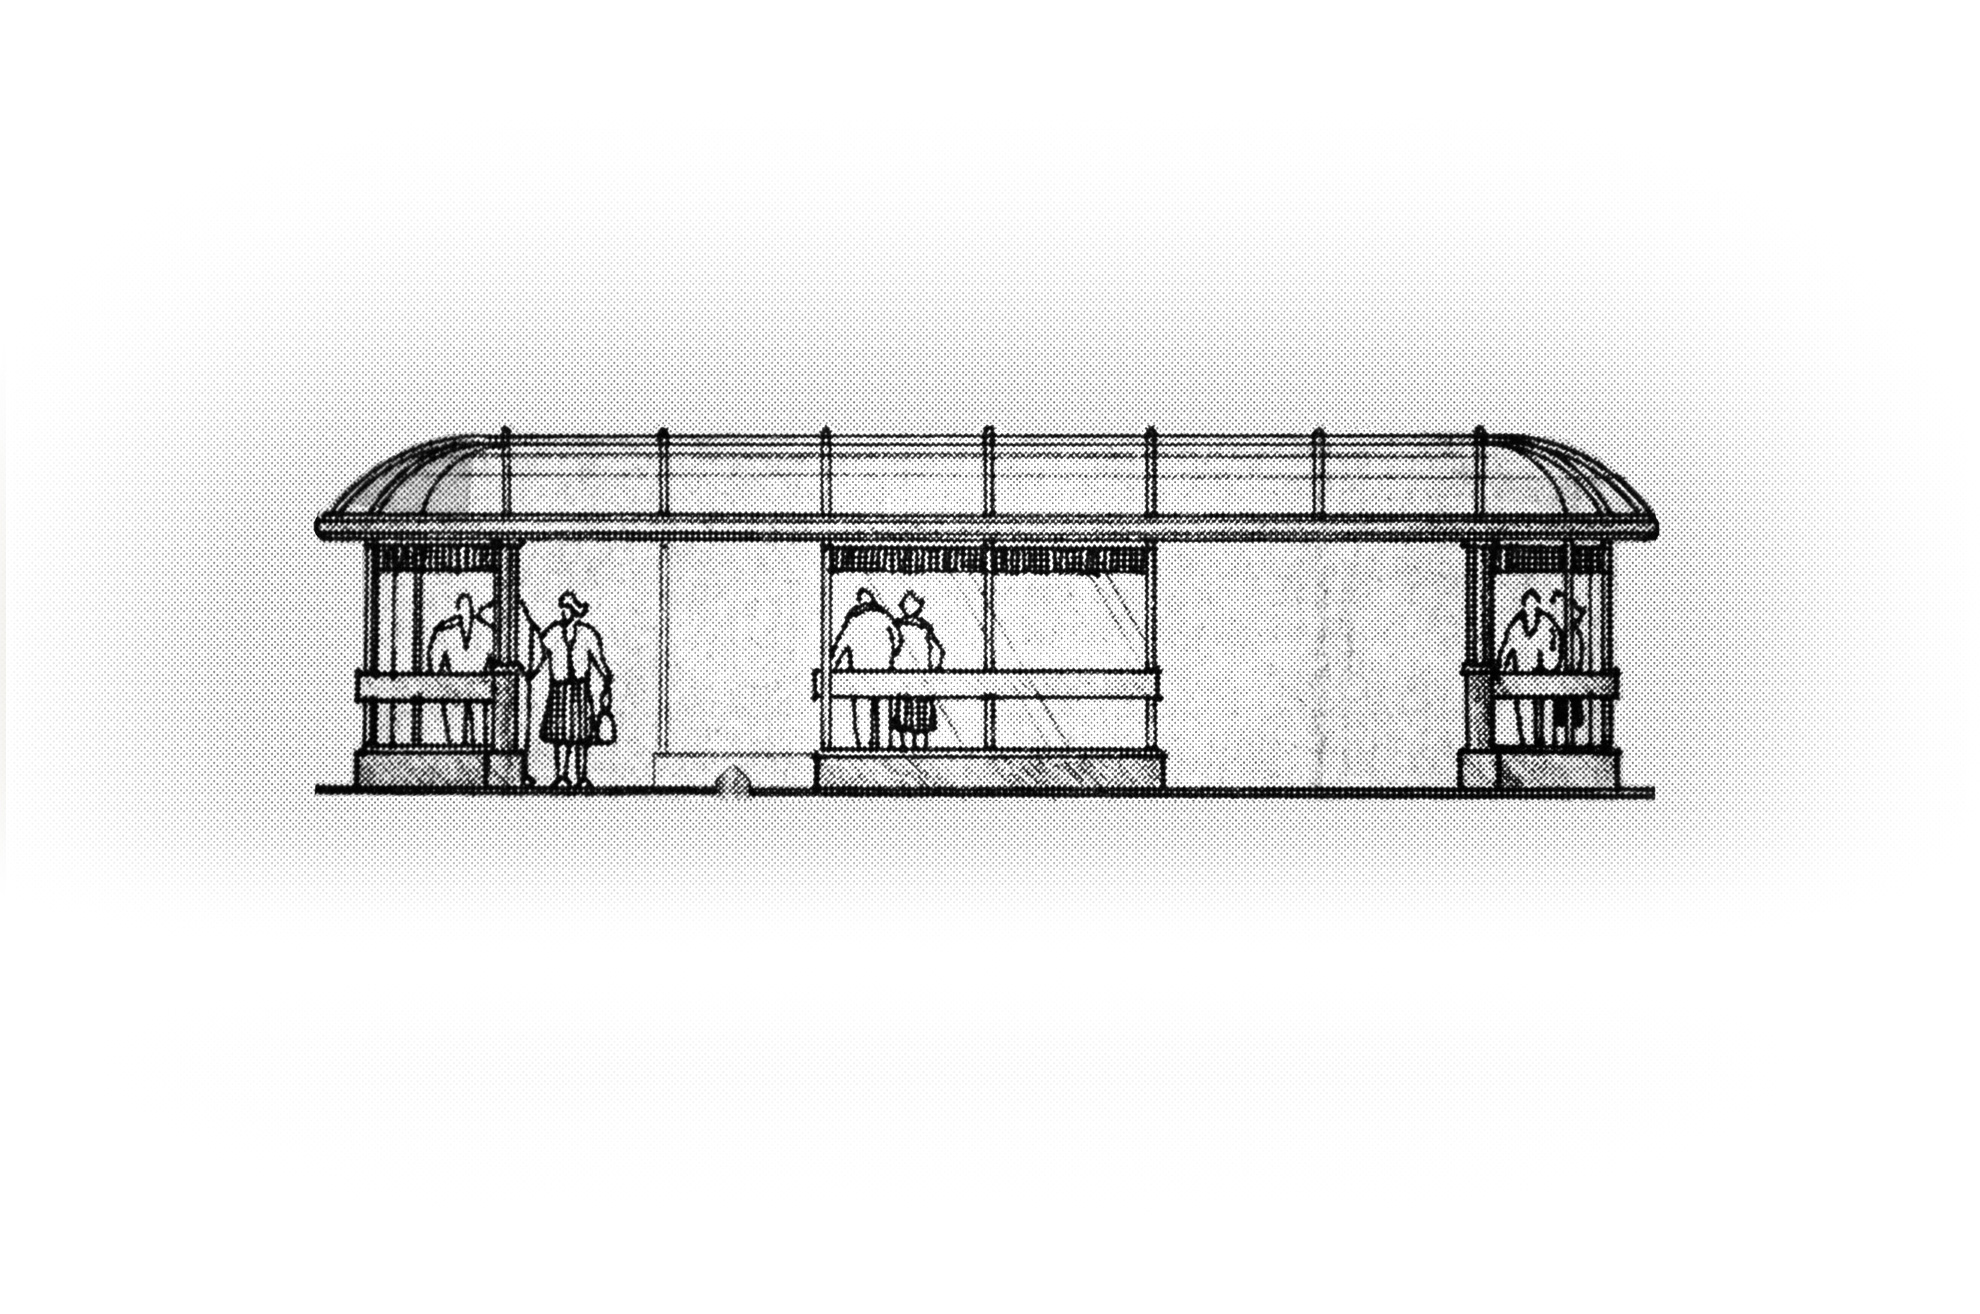 A profile drawing of one of the larger bus shelters.